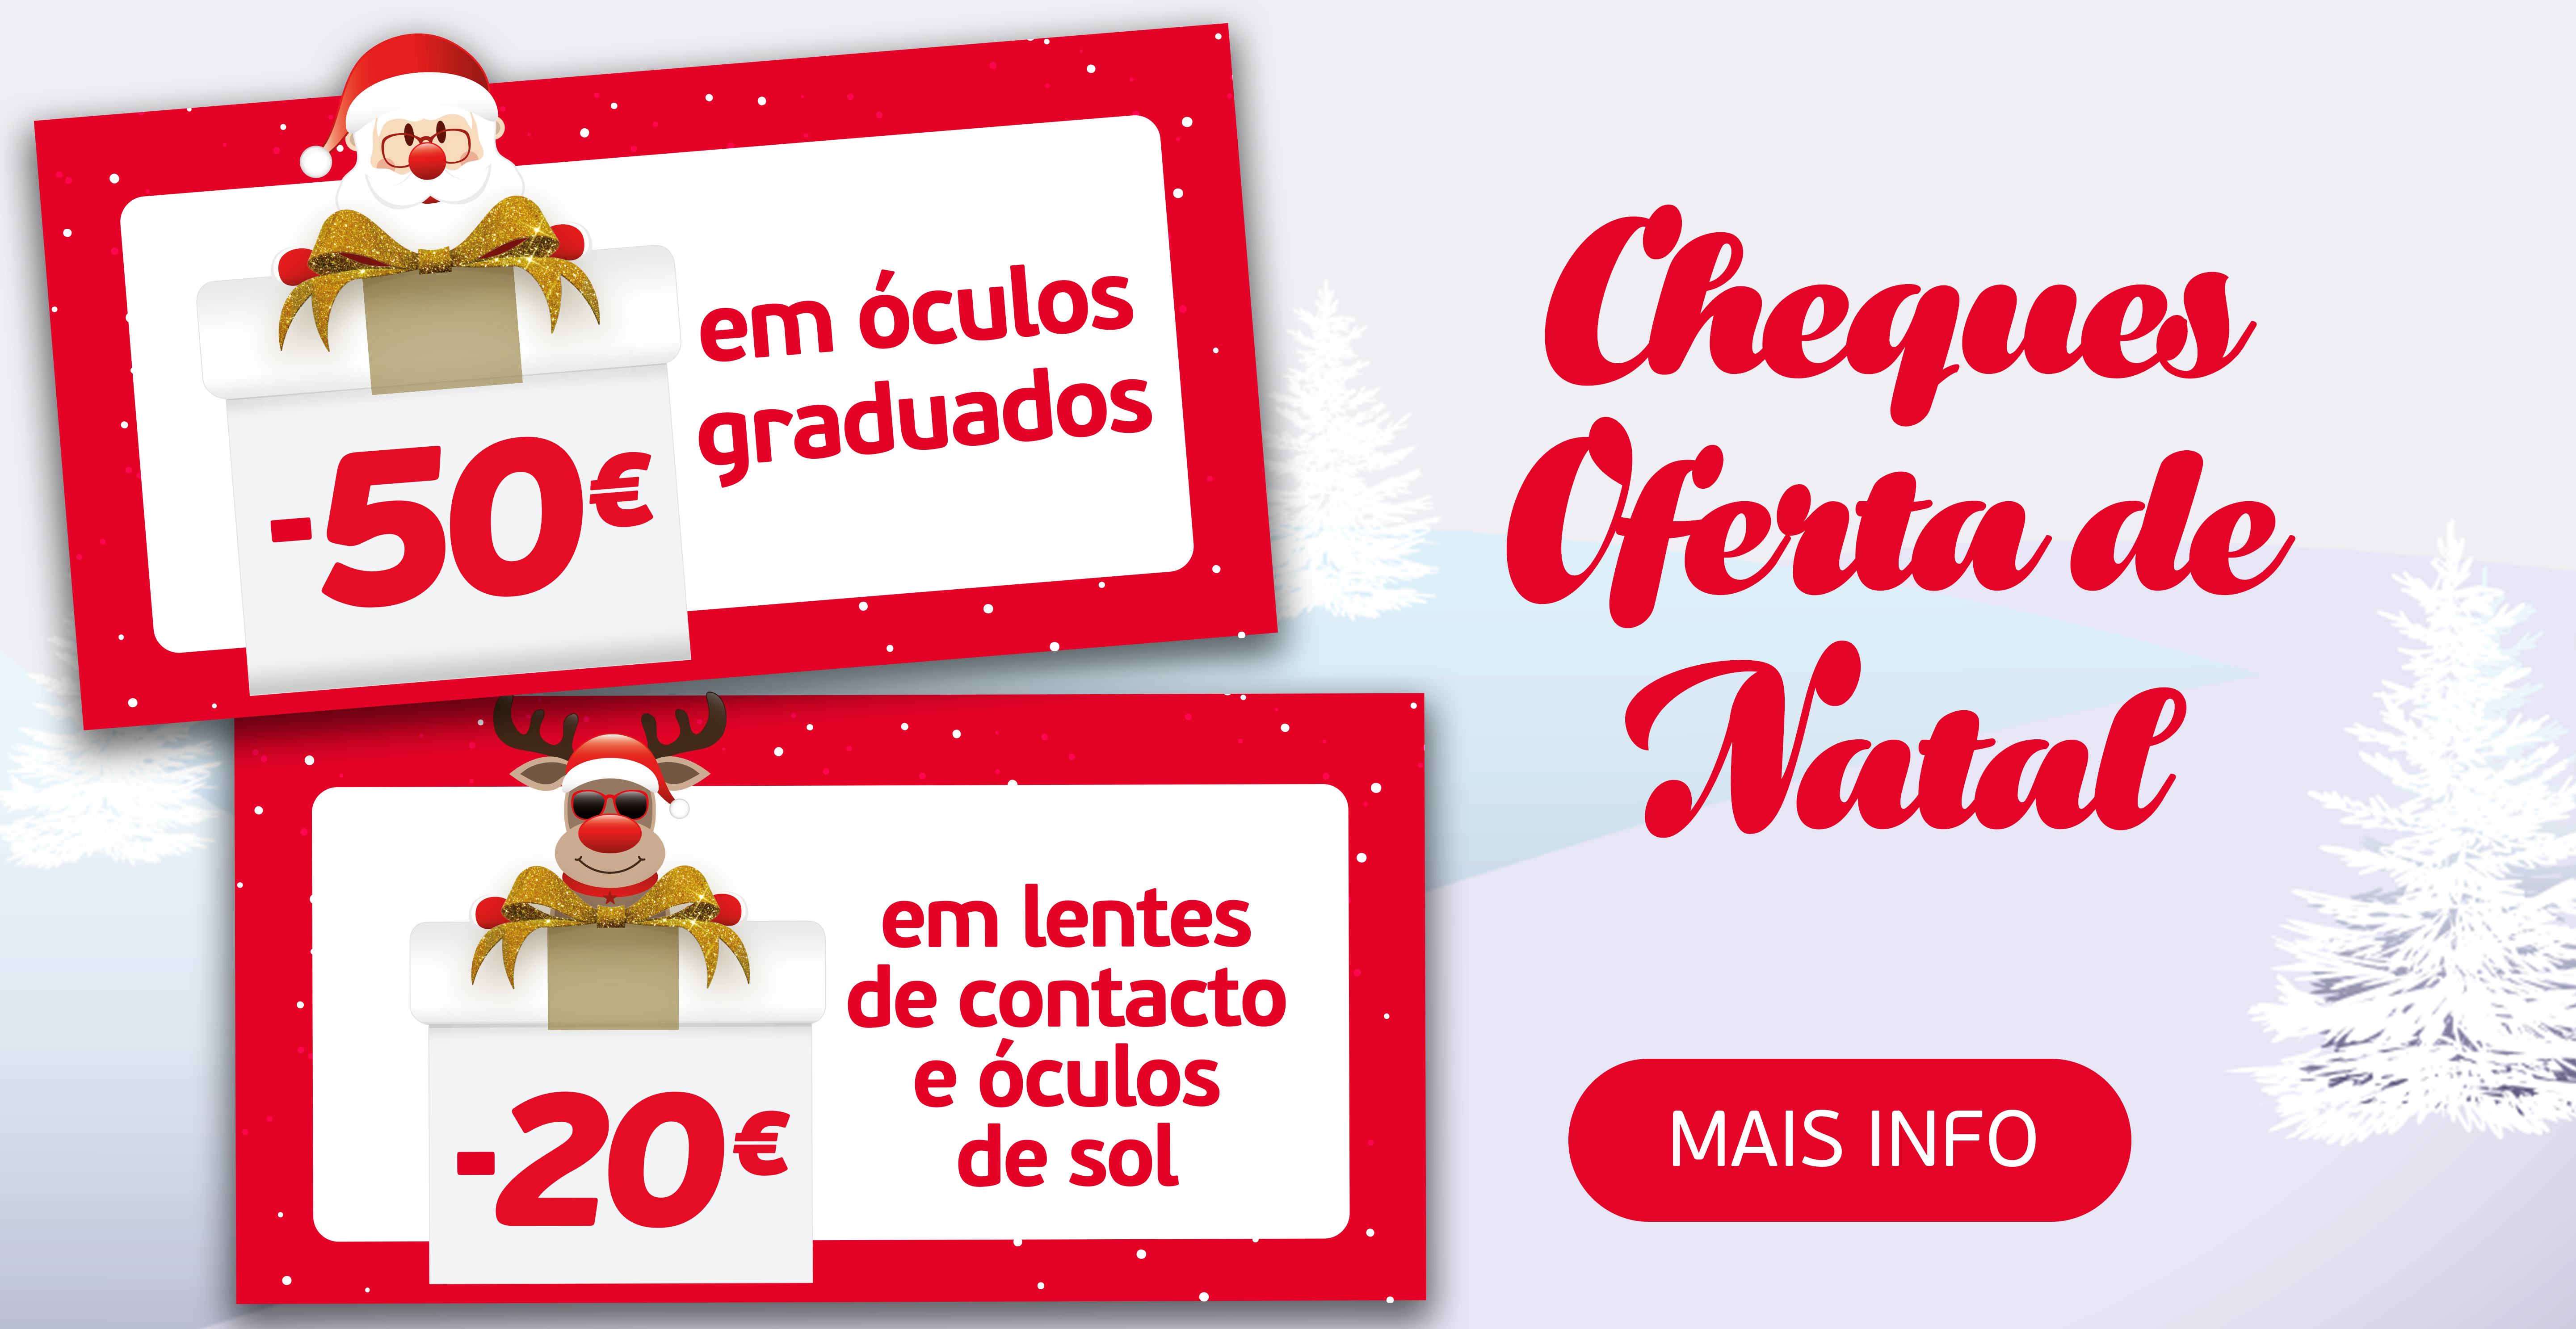 Cheques Natal